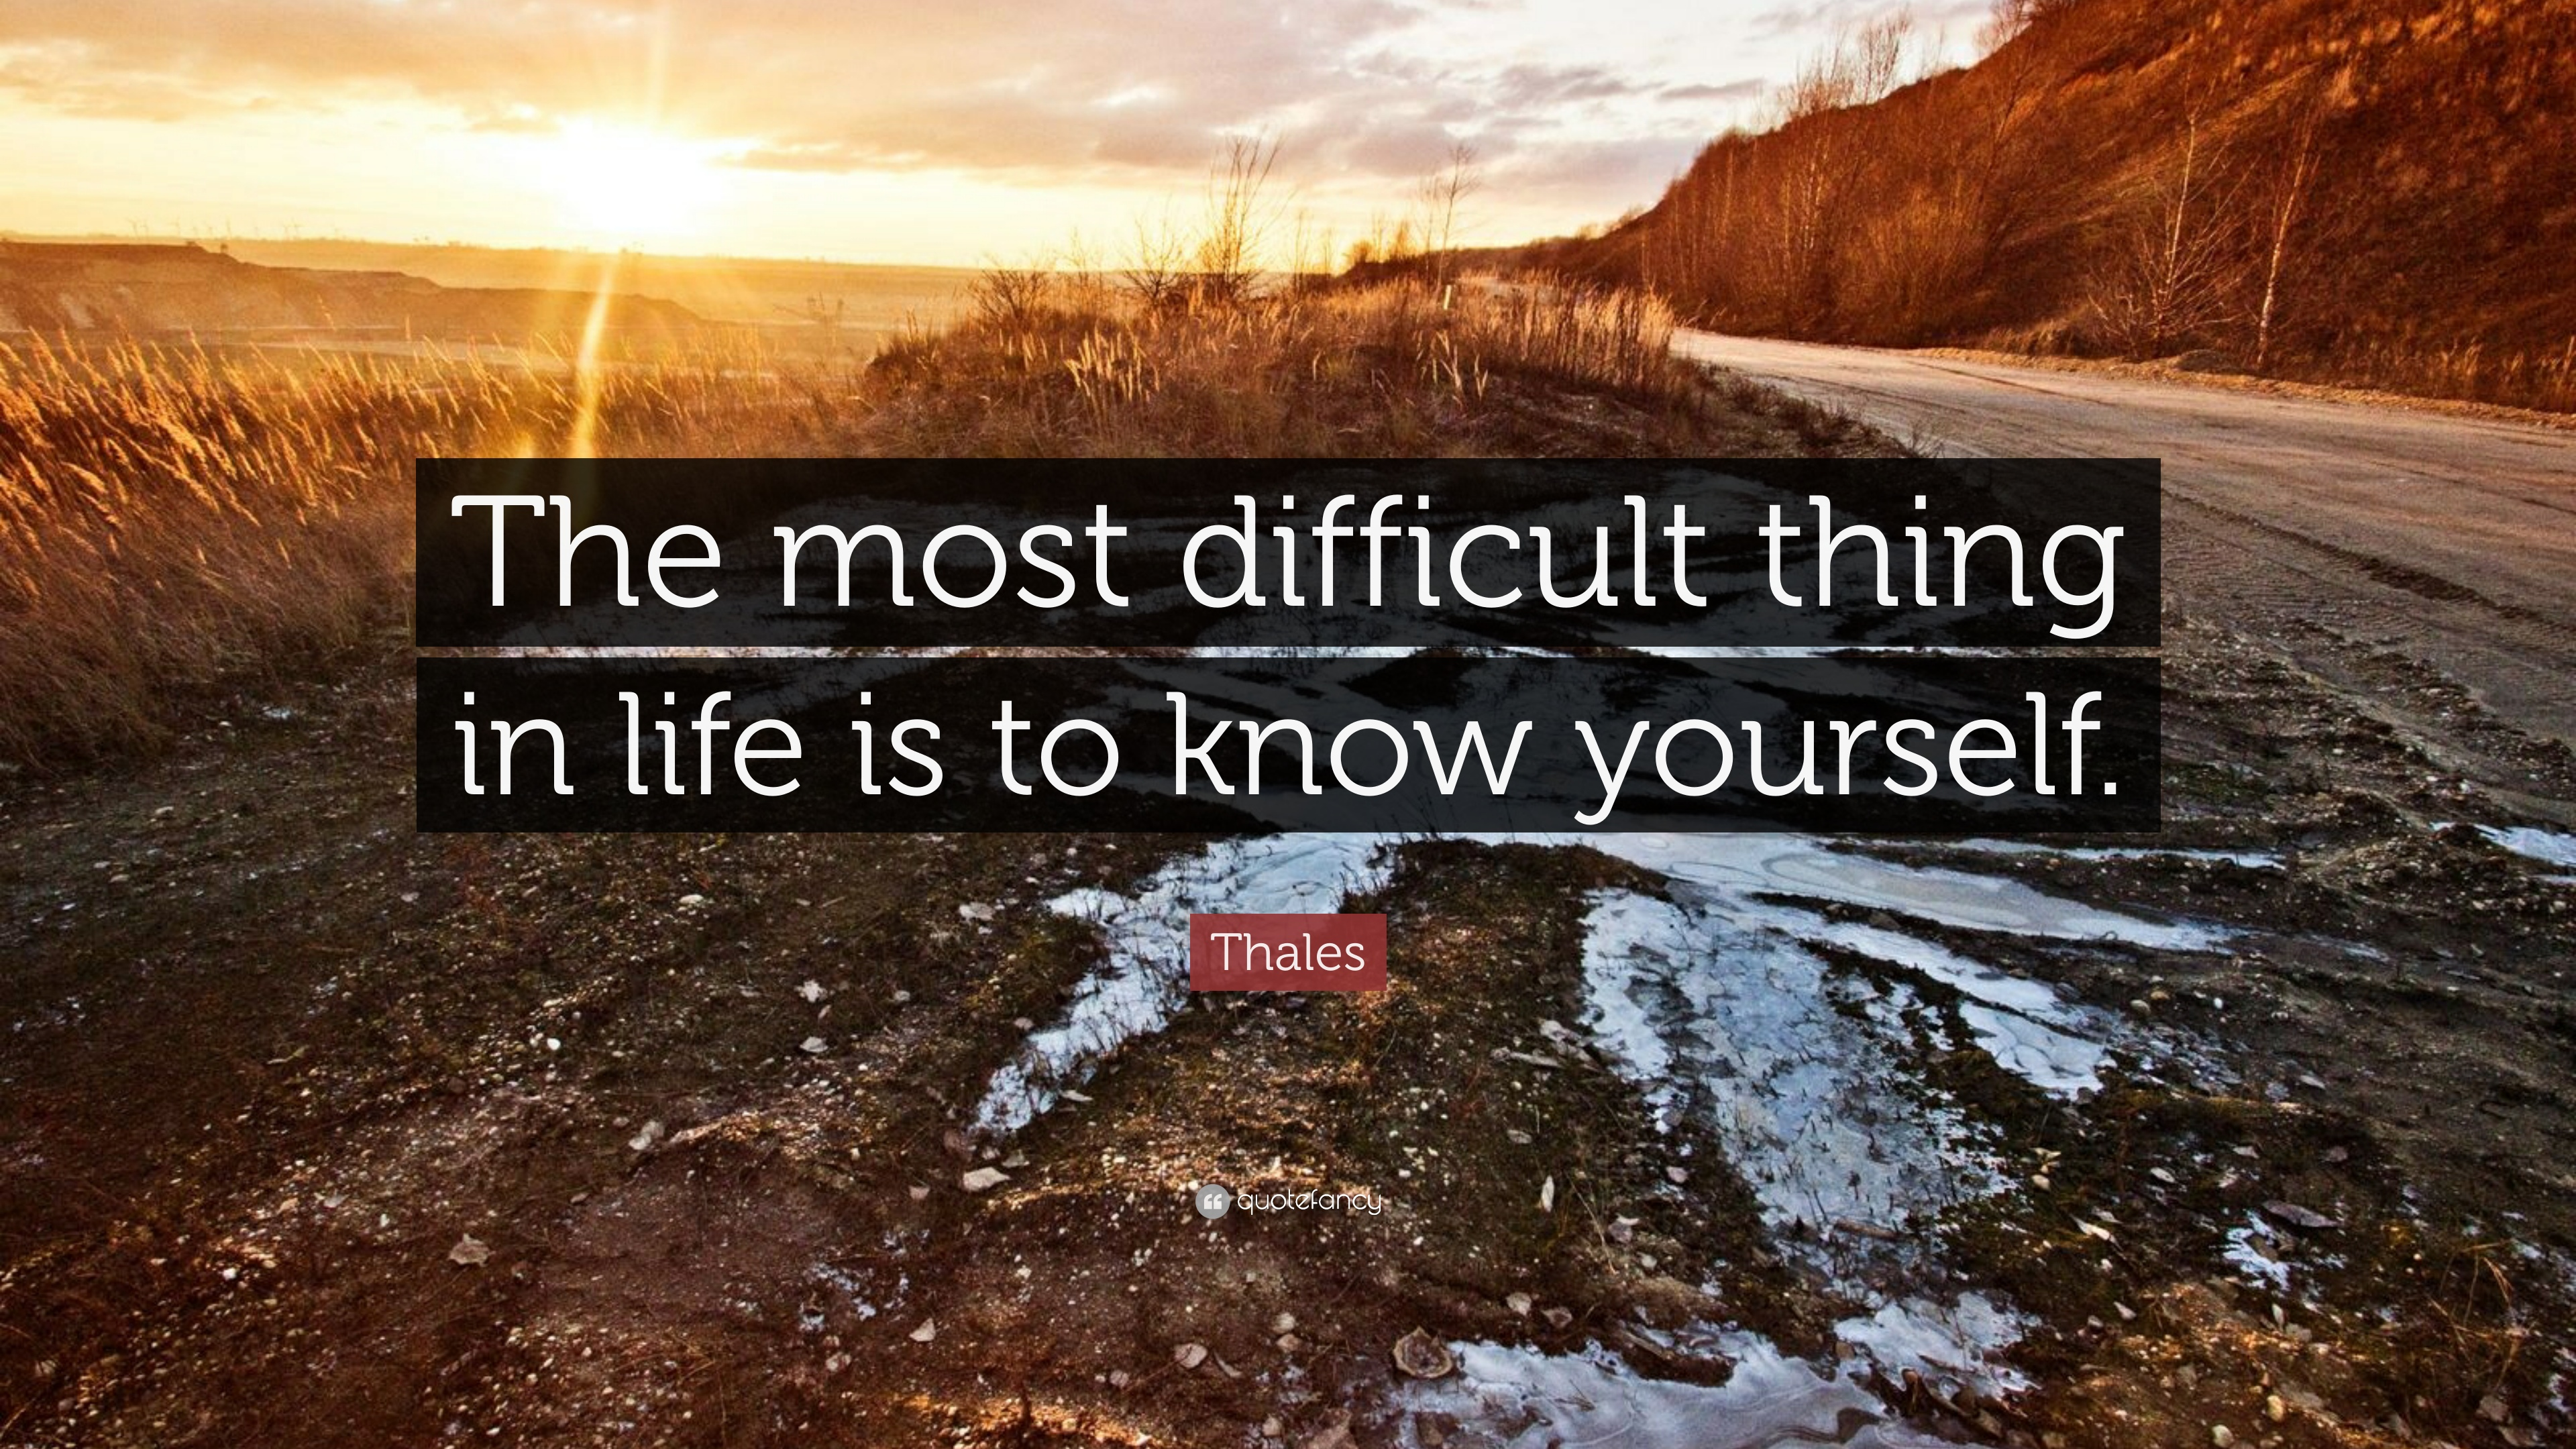 the most difficult thing in life is to know yourself Make it thy business to know thyself, which is the most difficult  the greatest thing in life  there is no substitute for accurate knowledge know yourself,.